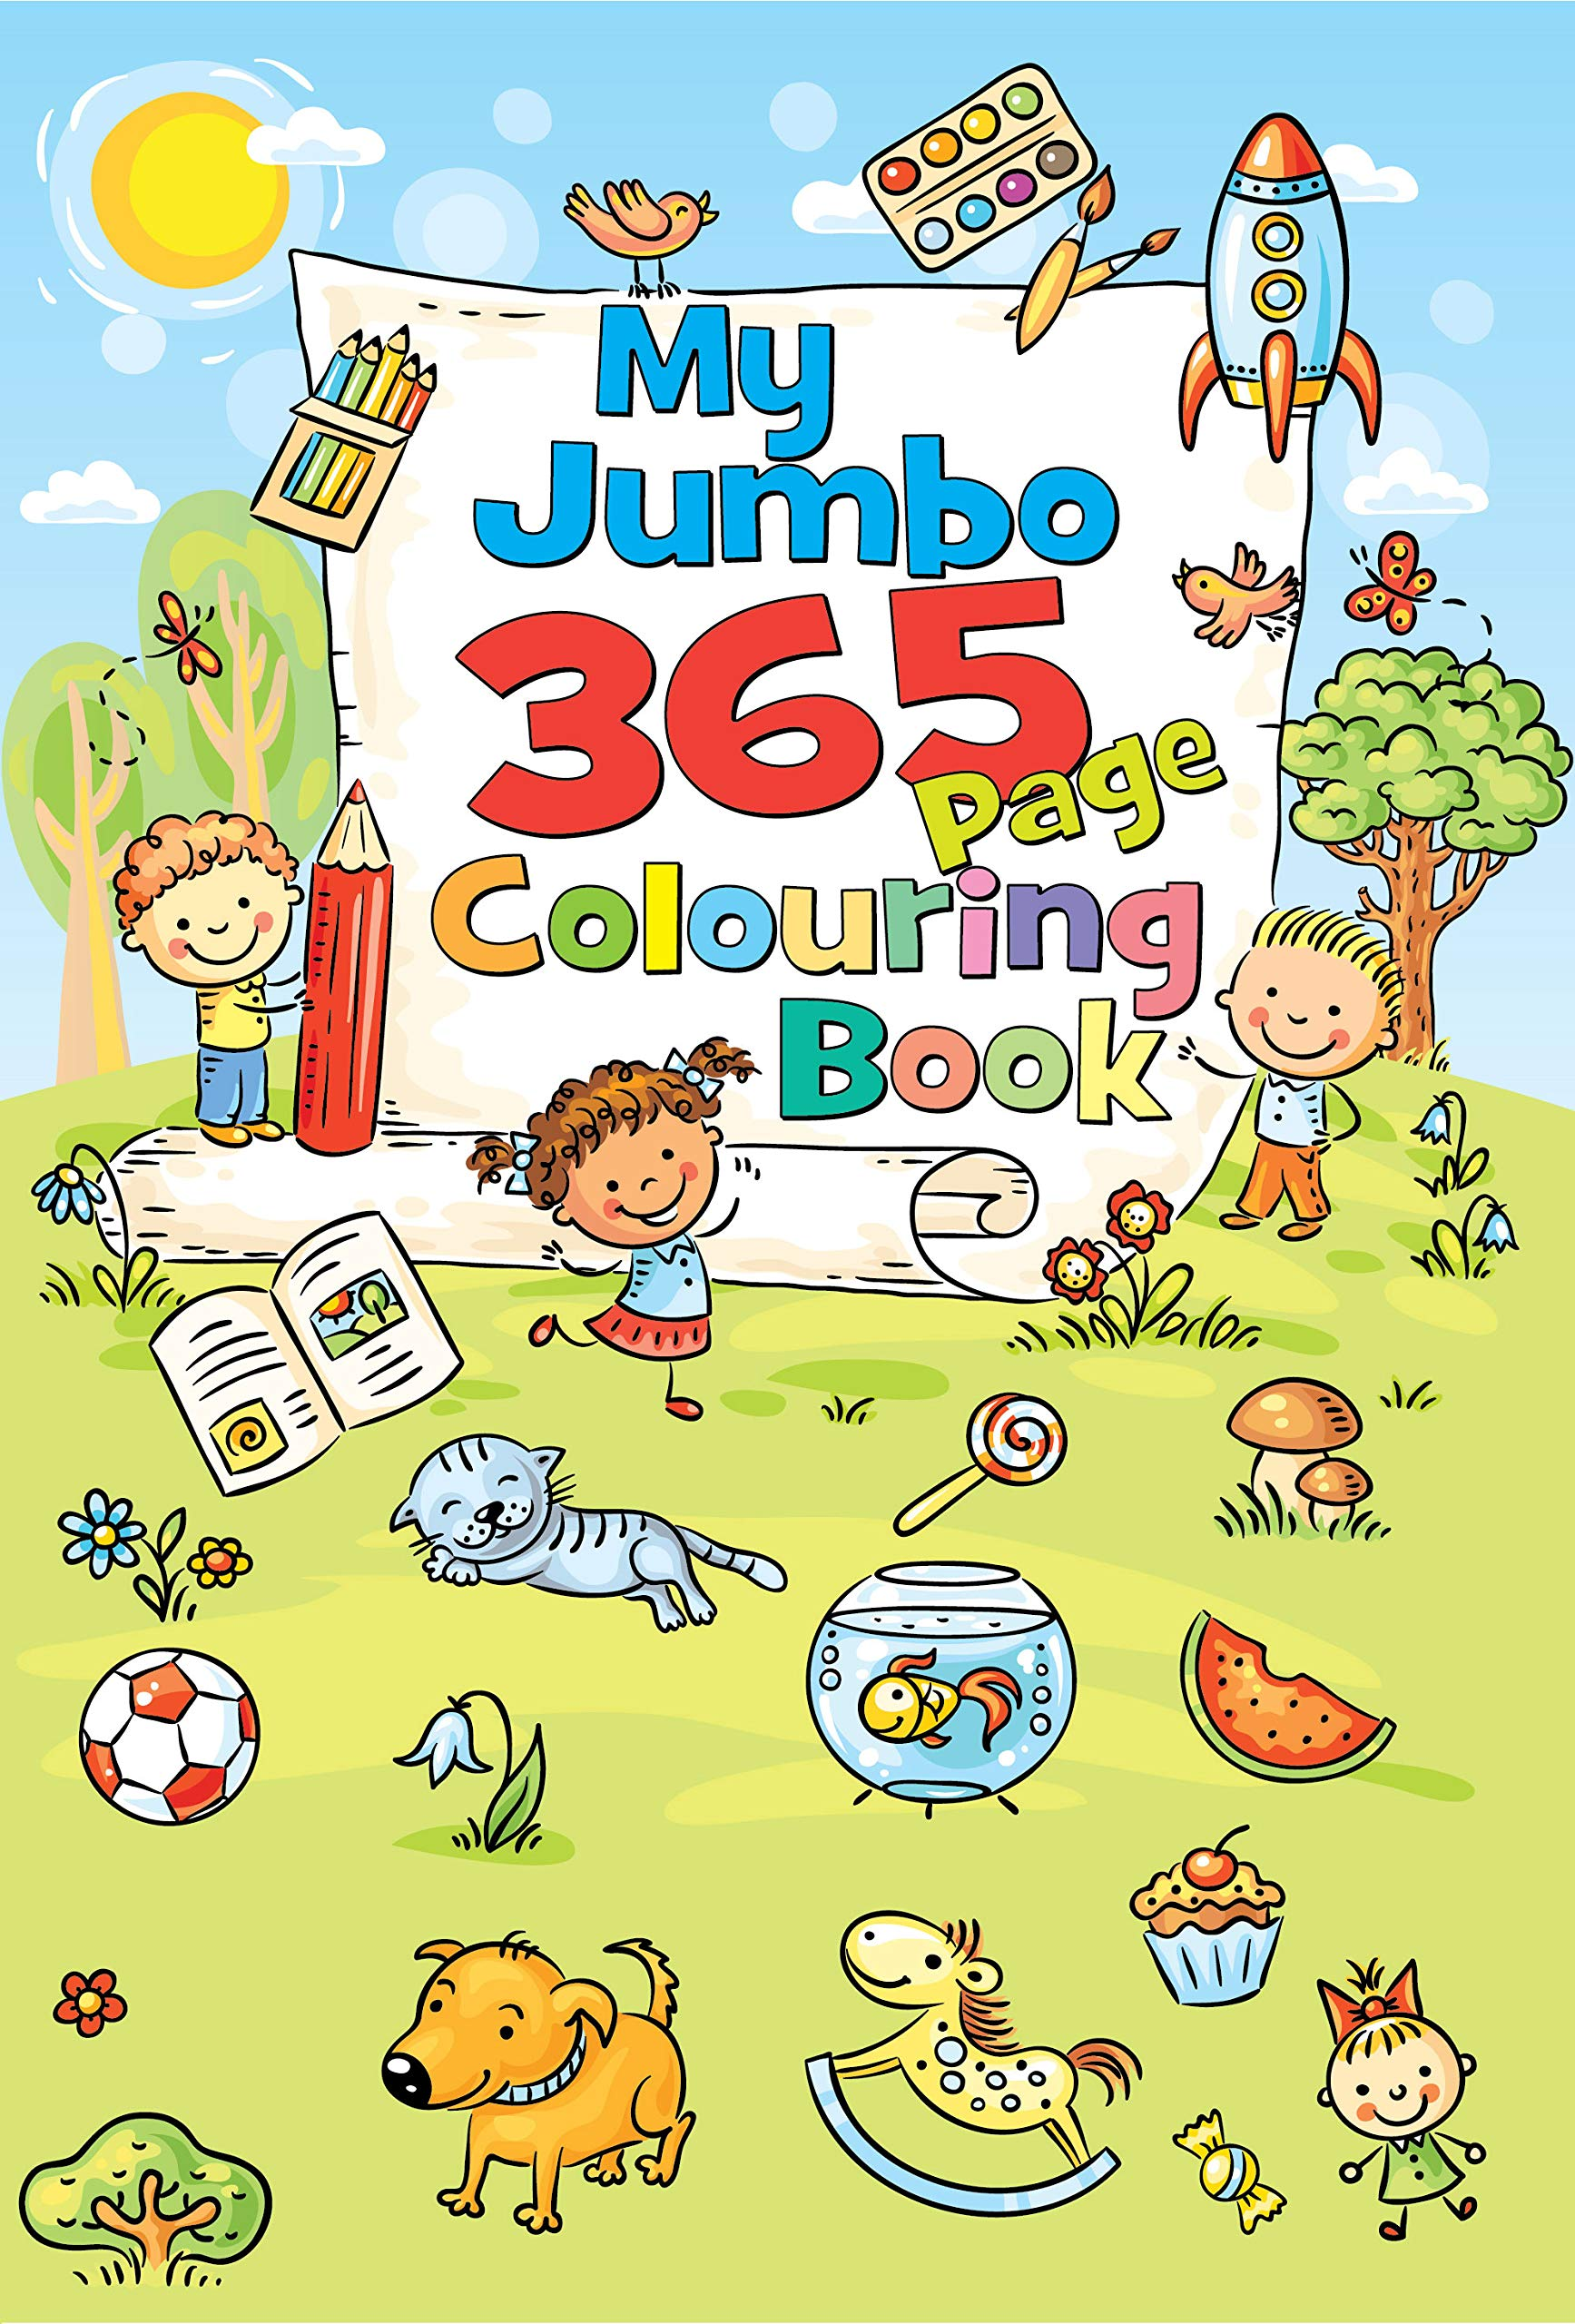 Buy My Jumbo 365 Page Colouring Book 1 365 Colouring Book Book Online At Low Prices In India My Jumbo 365 Page Colouring Book 1 365 Colouring Book Reviews Ratings Amazon In